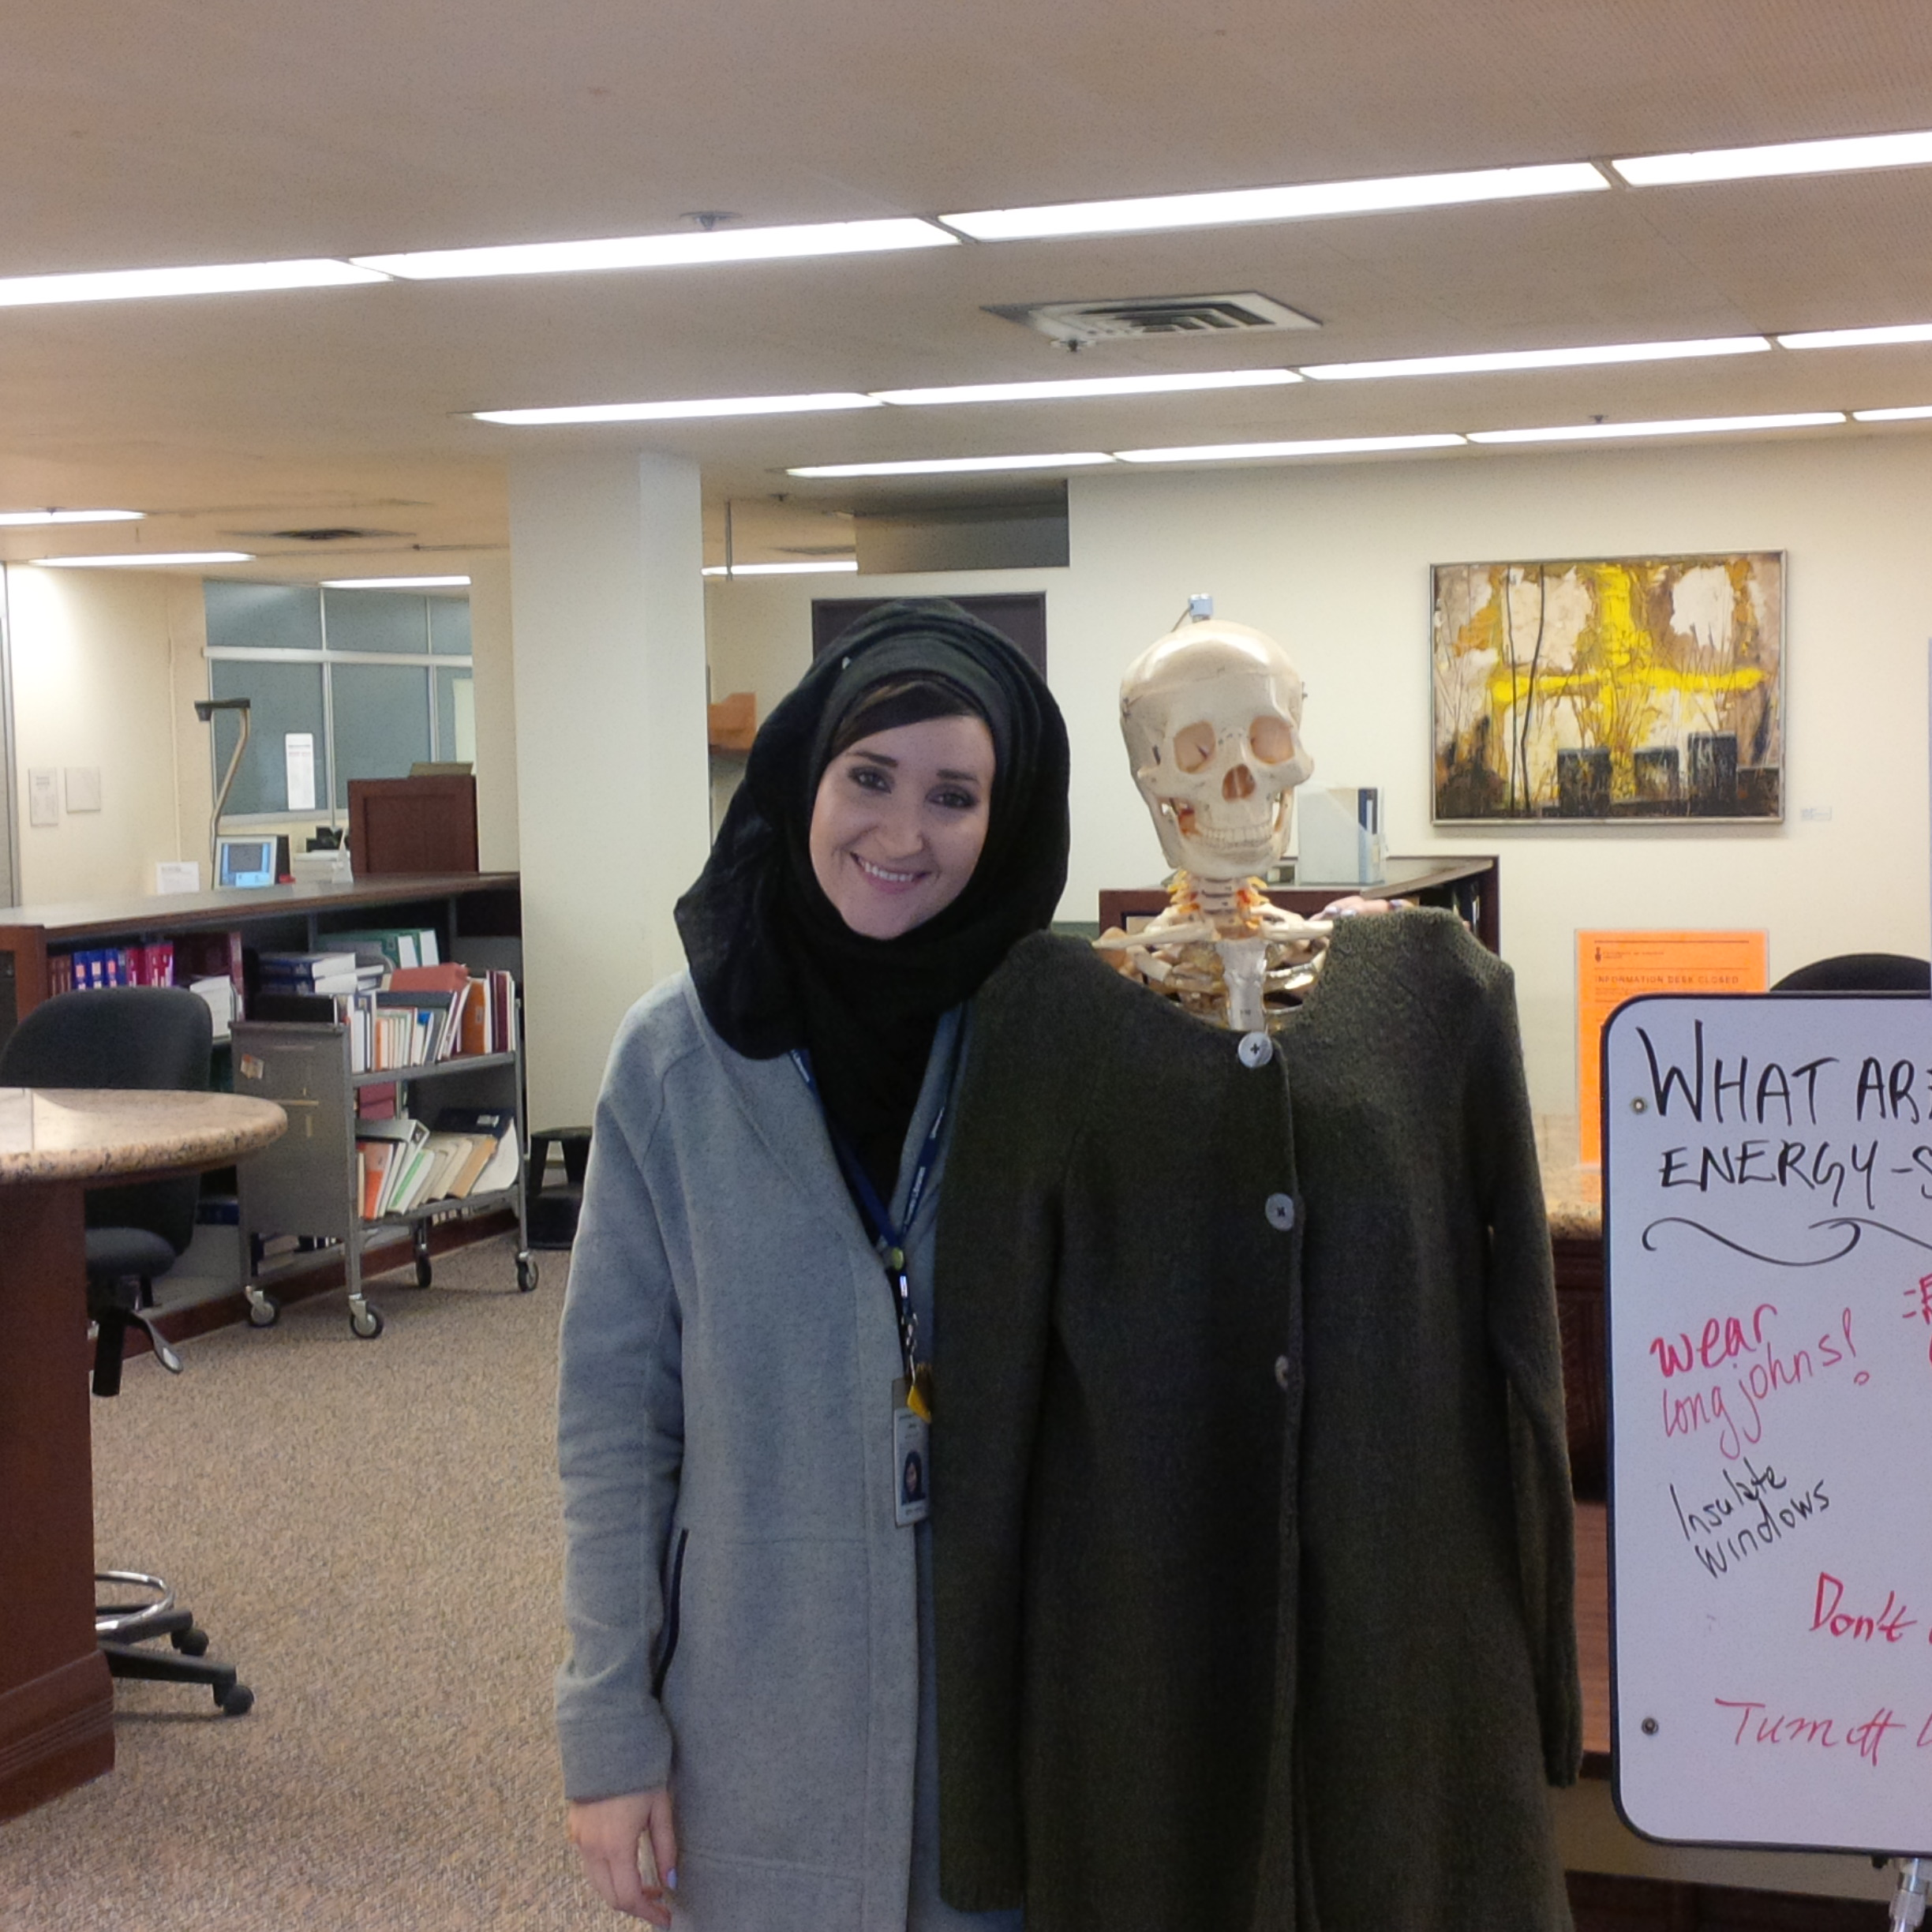 Another student with Skully, wearing long, grey sweater